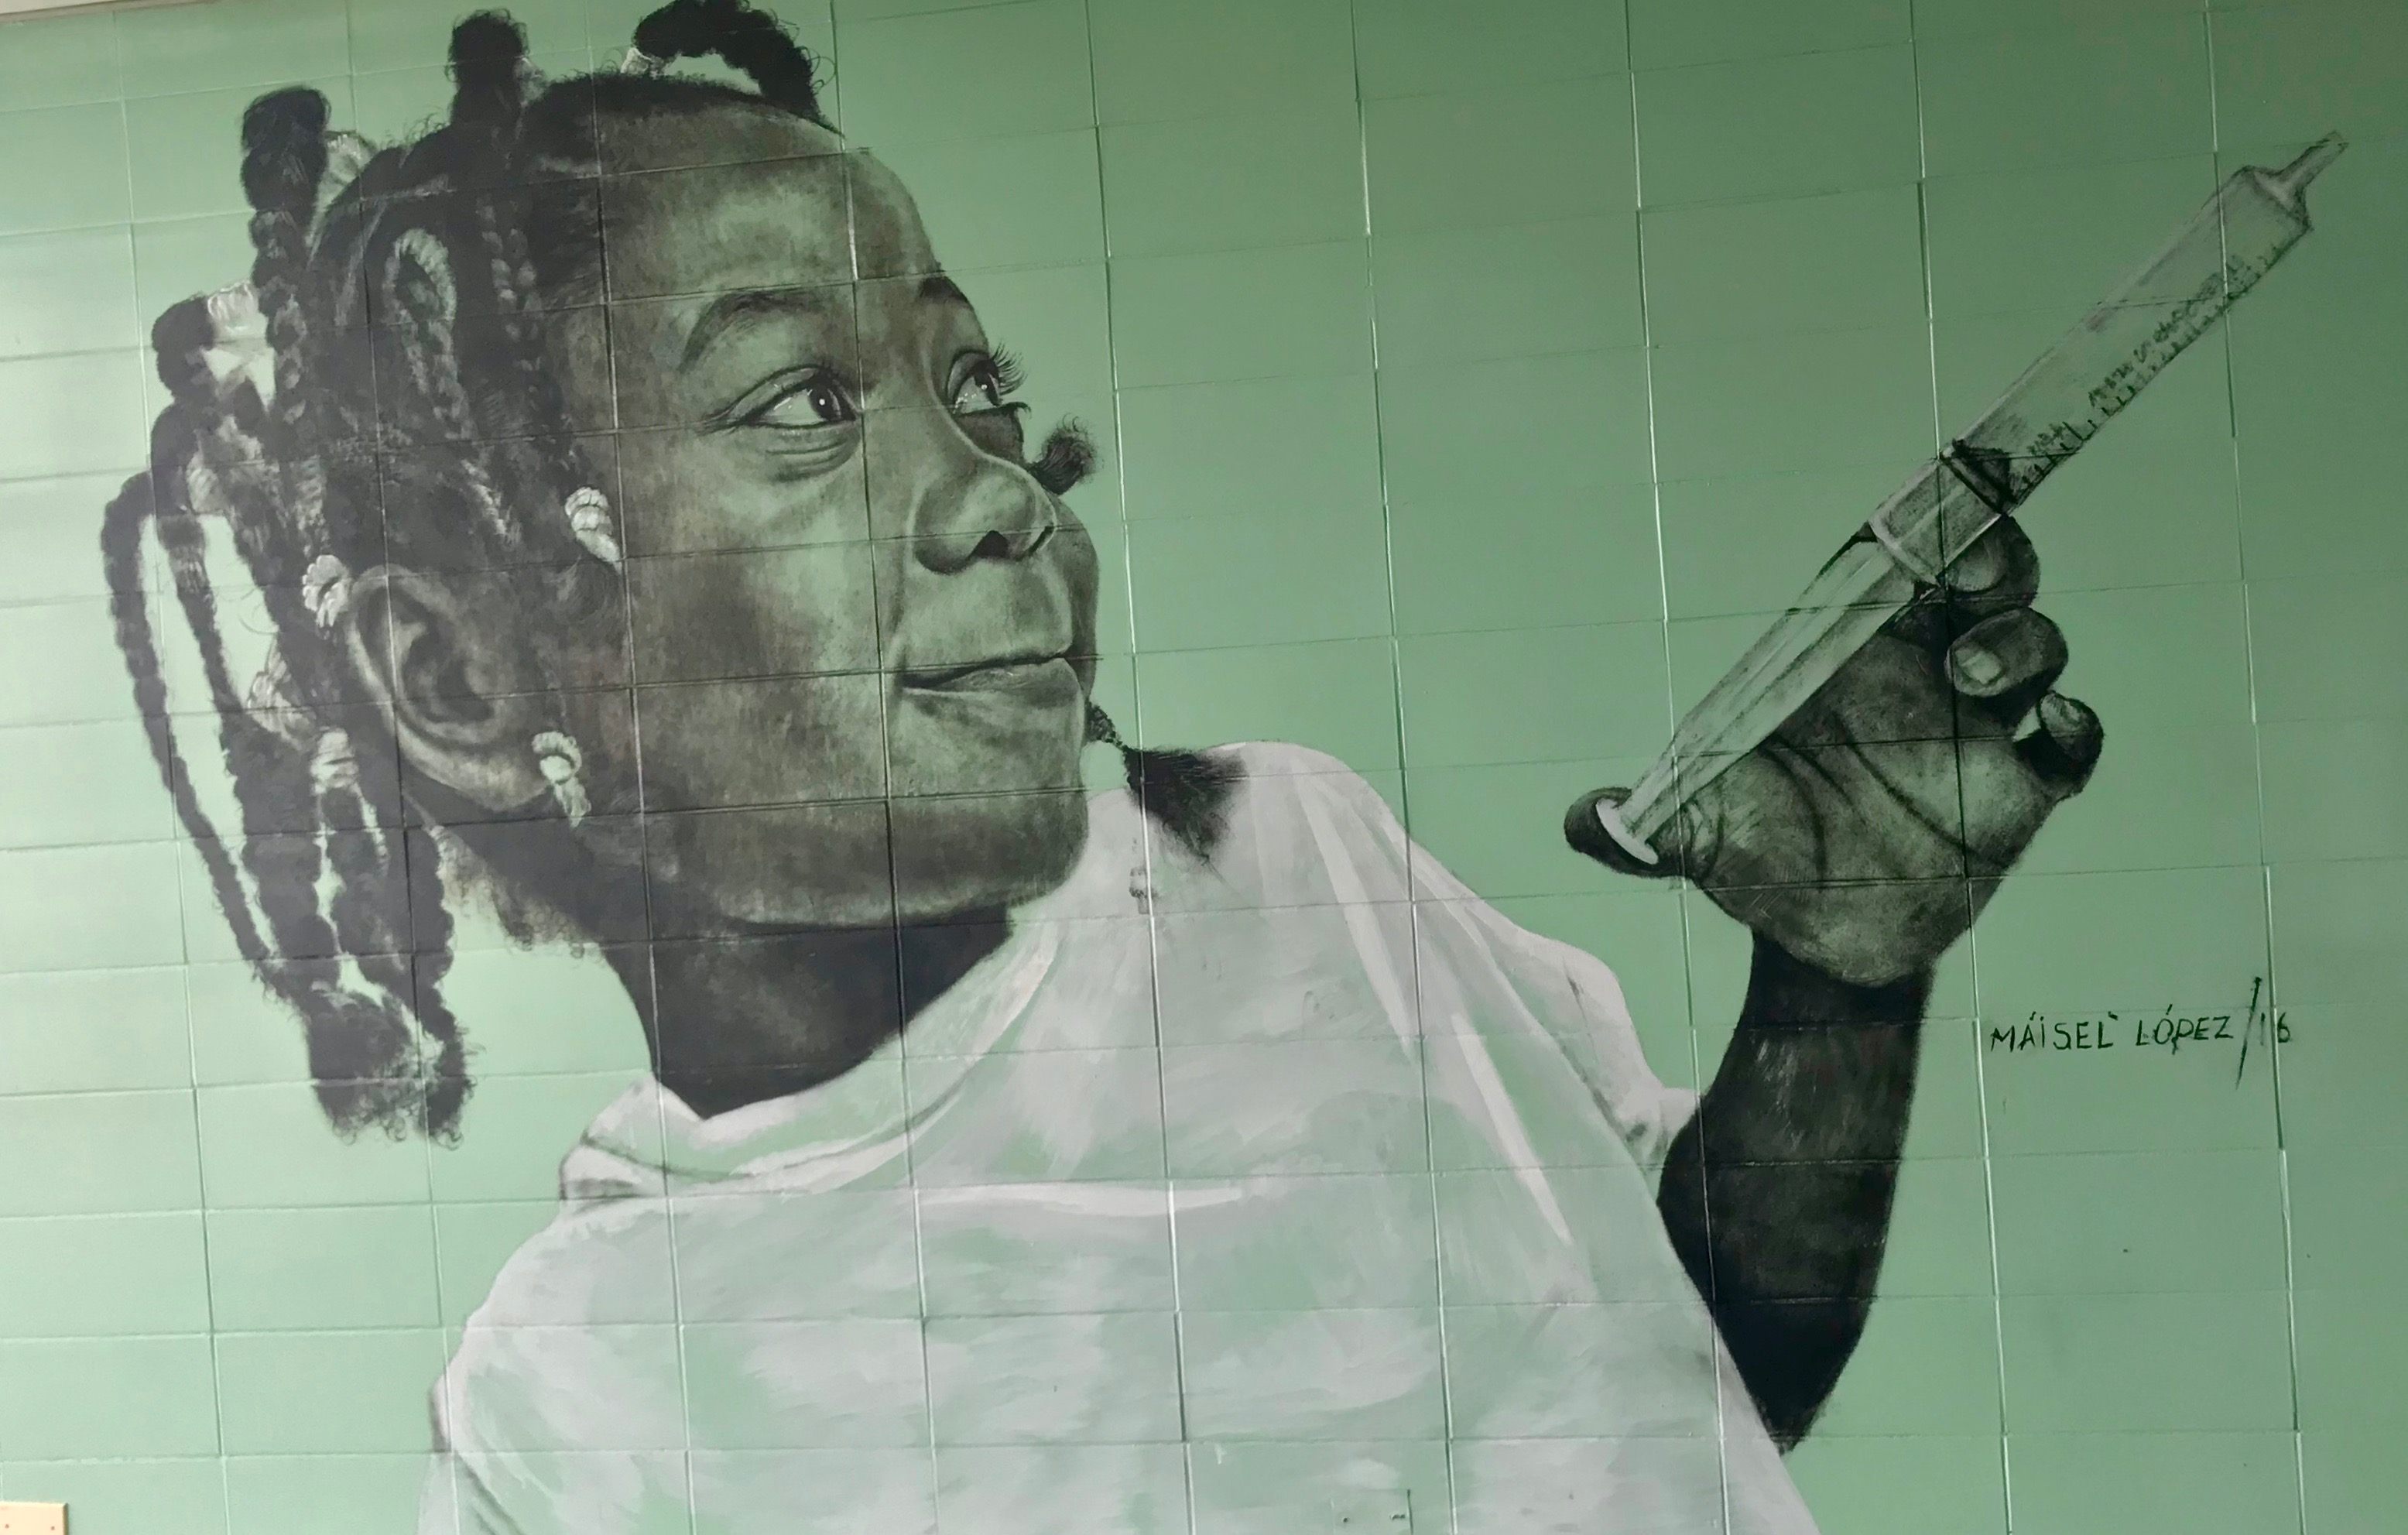 Cuban Mural Child with Syringe